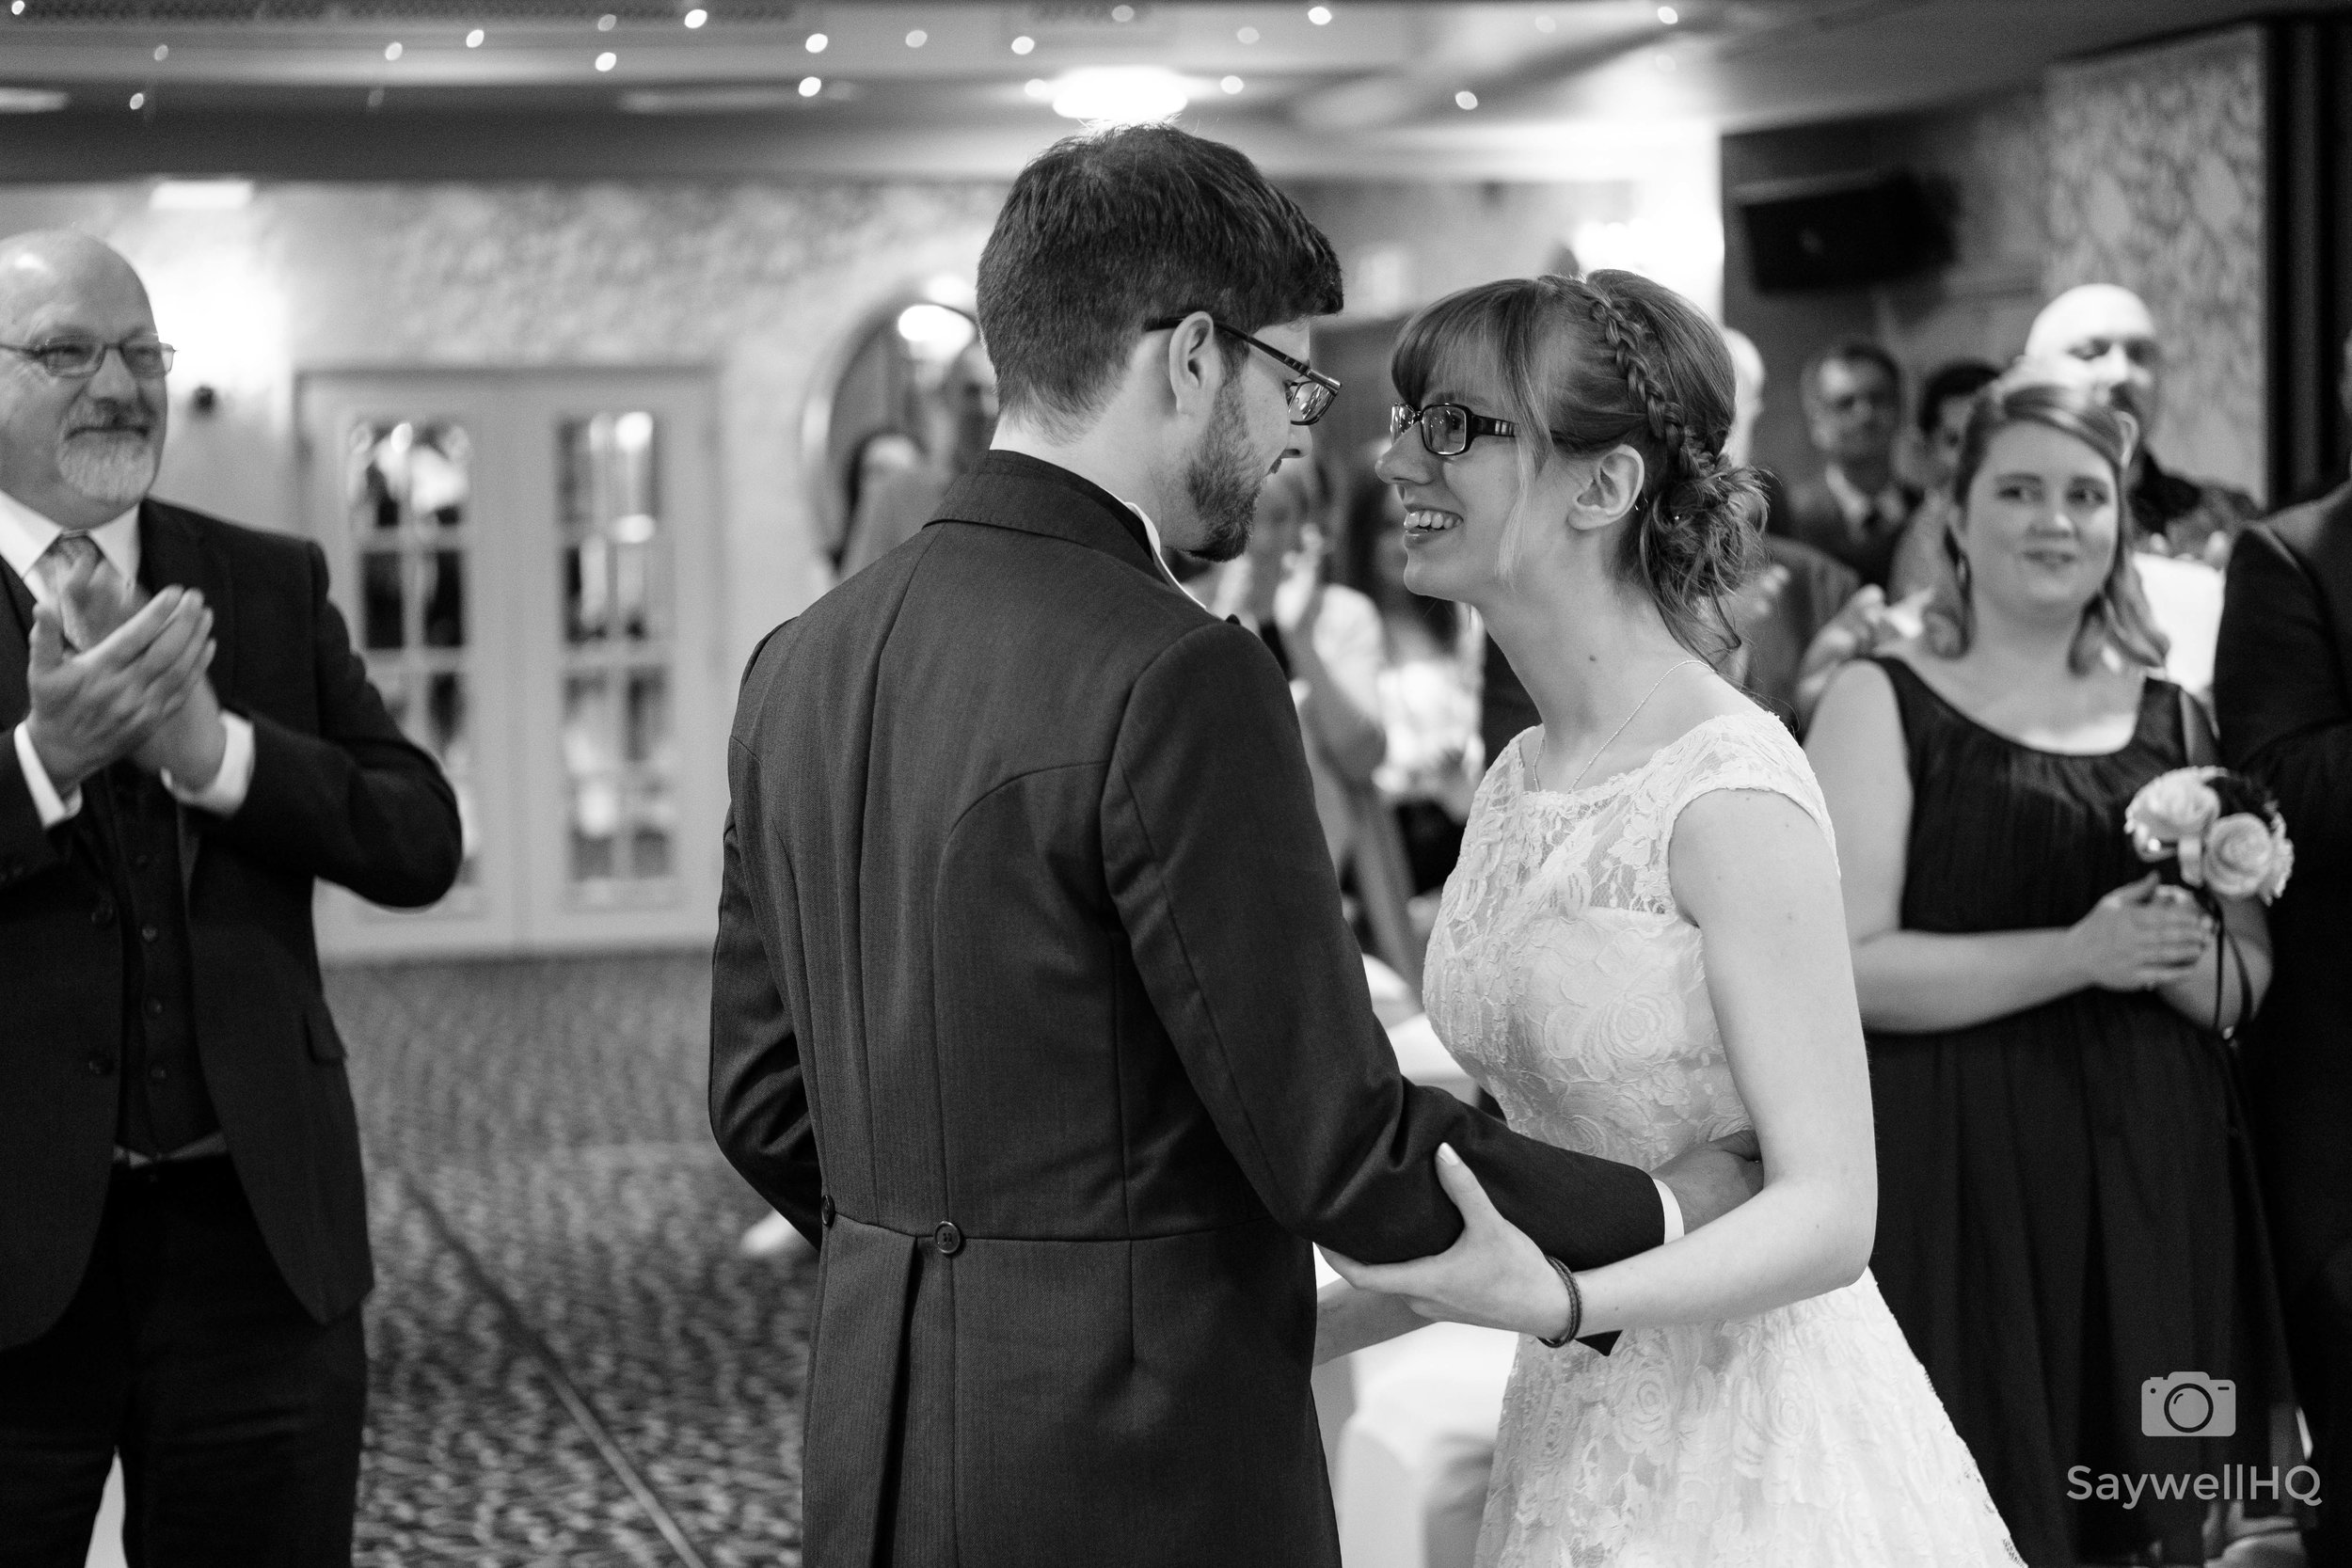 wedding at the Belmont Hotel in Leicester - bride + groom looking happy during the wedding ceremony